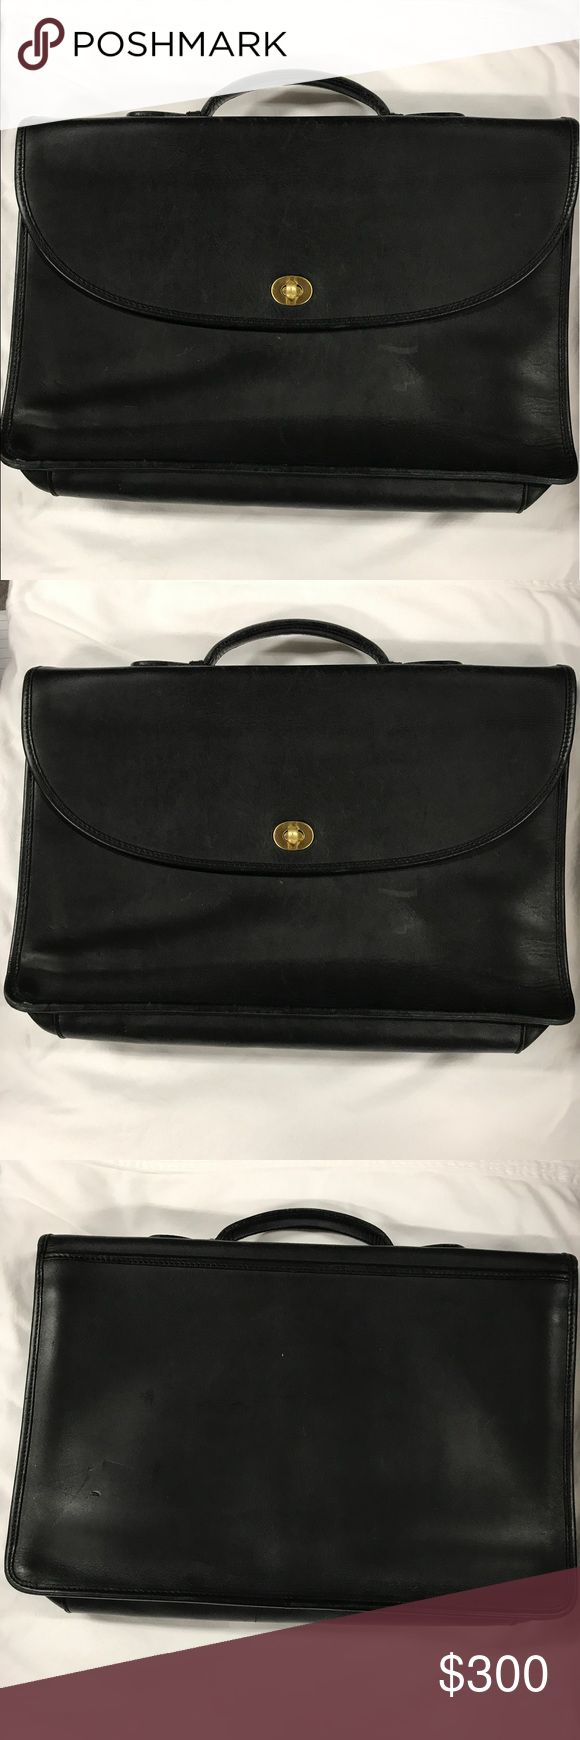 Coach briefcase Coach briefcase. Very nice leather. Very great condition Coach Bags Laptop Bags